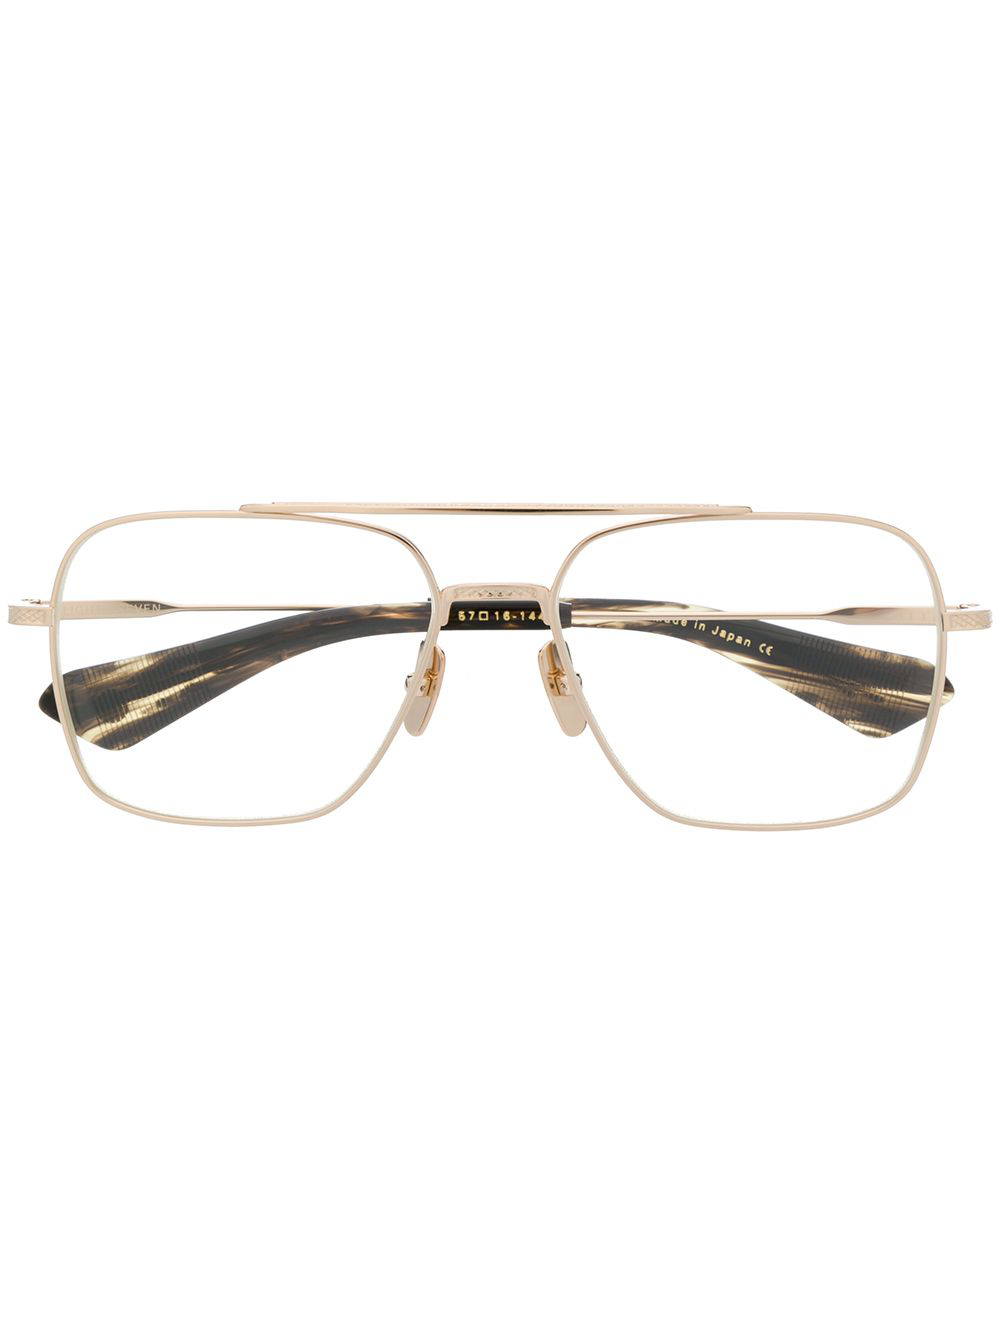 f98e759be53 Dita Eyewear Aviator-Shaped Glasses - Gold. Farfetch